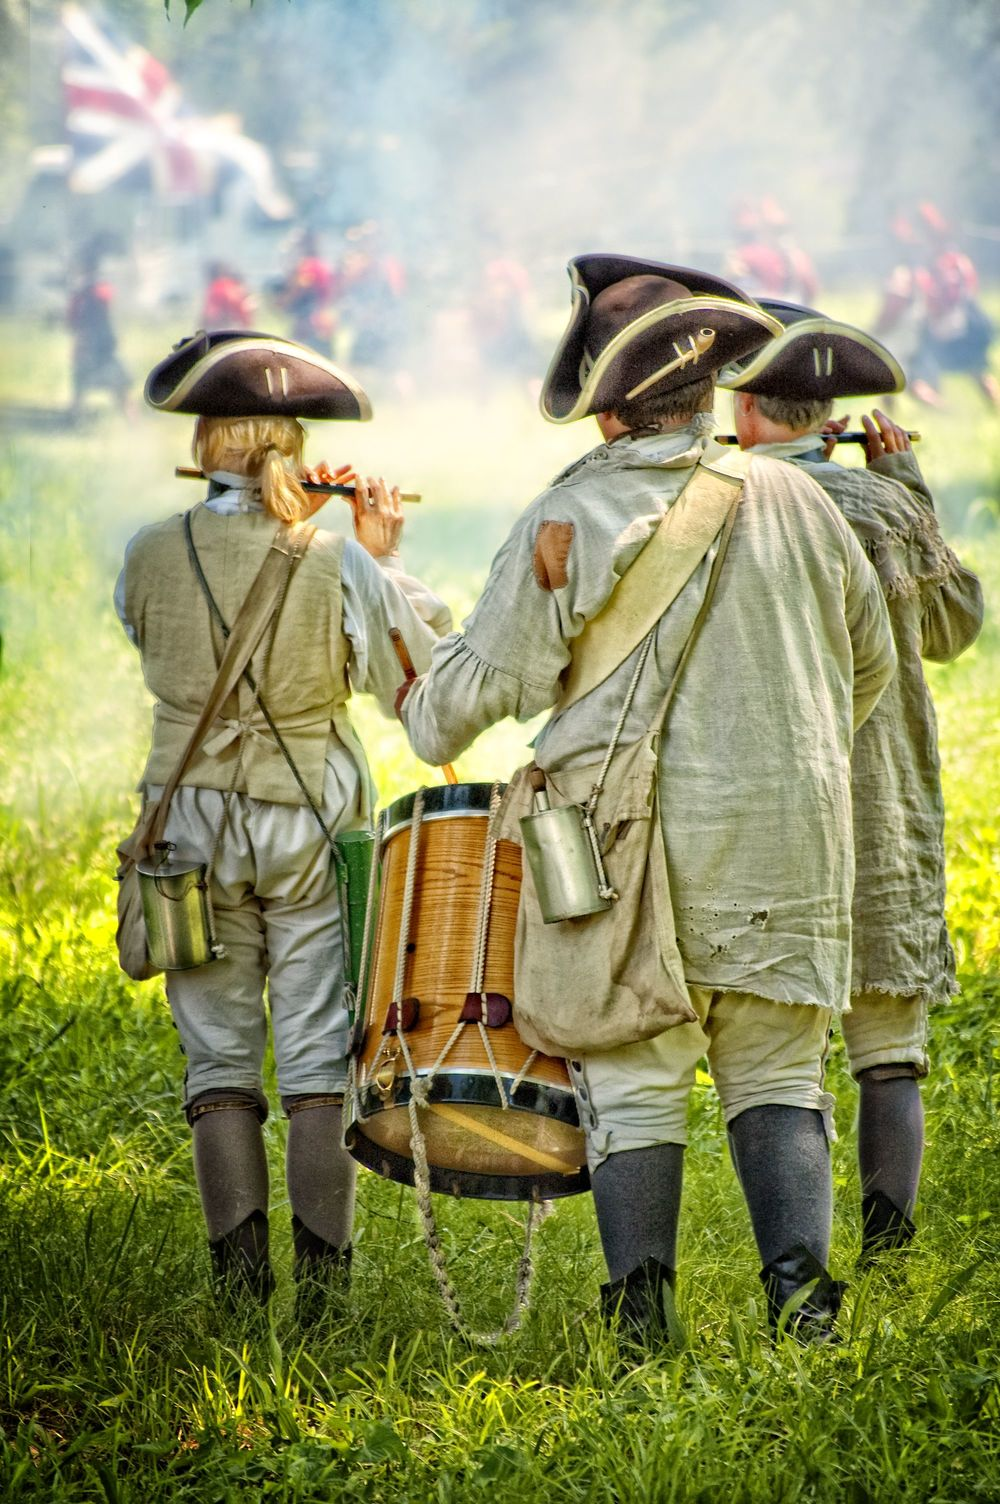 fife and drum copy.jpg